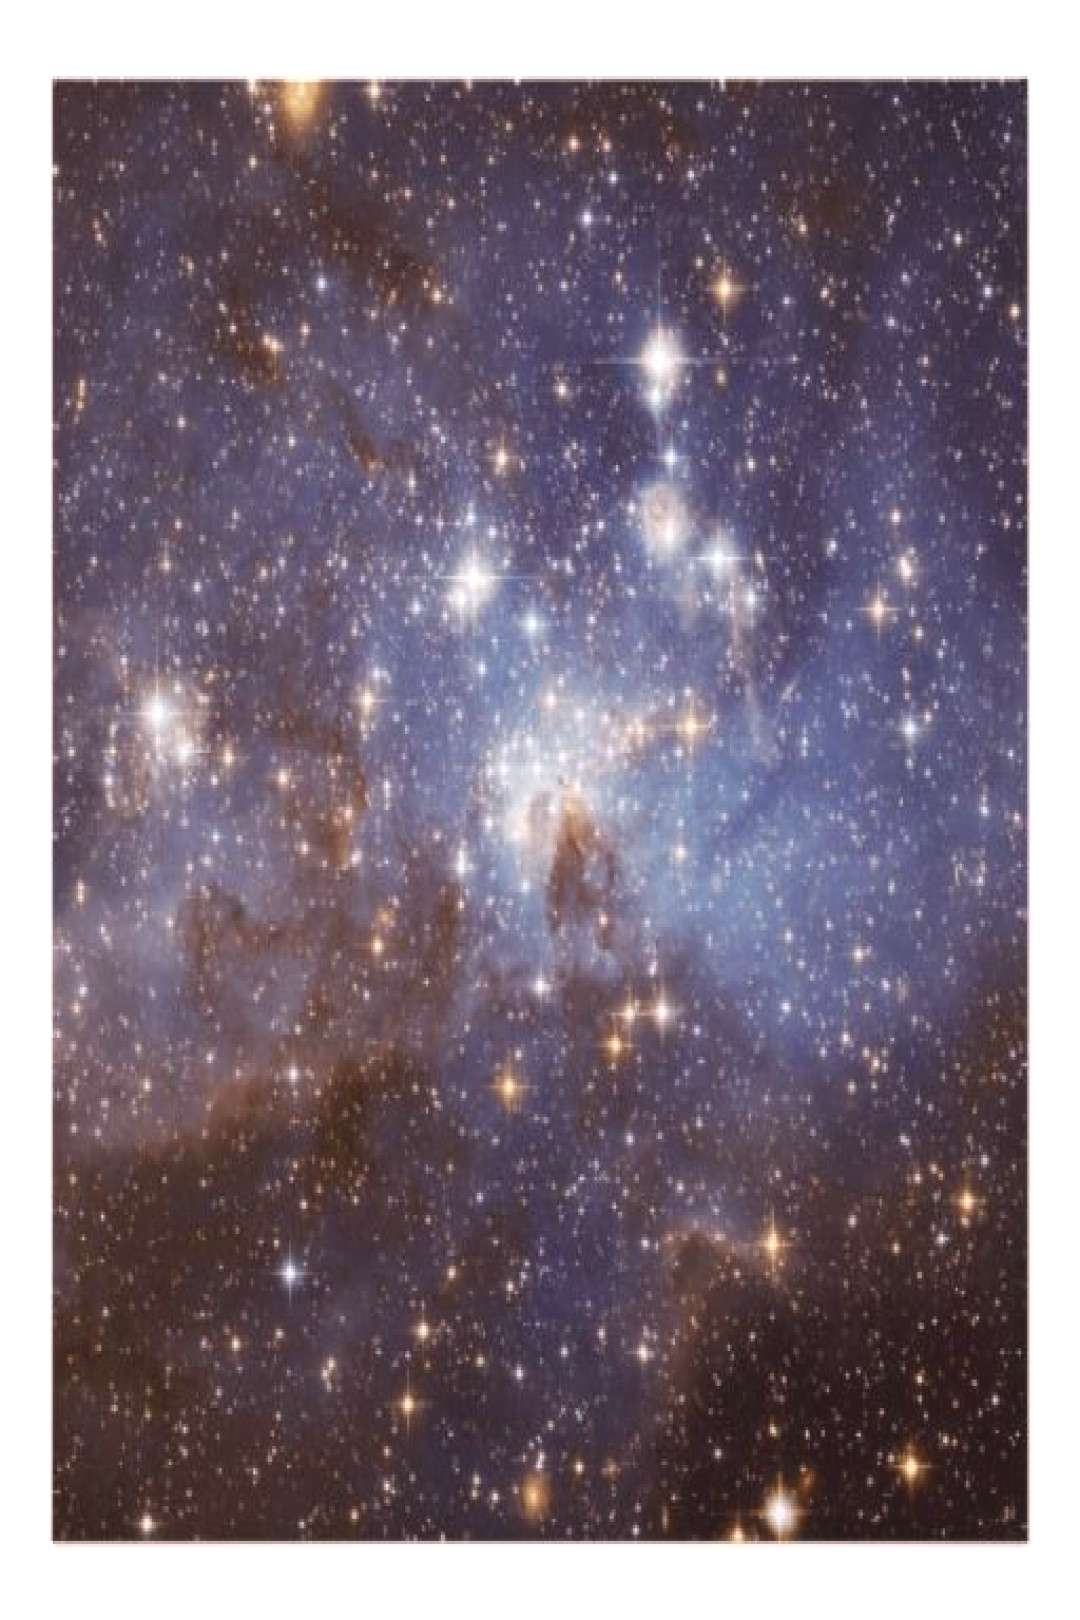 Star Formation Astronomy Constellations, Star Formation Astronomy Constellations,